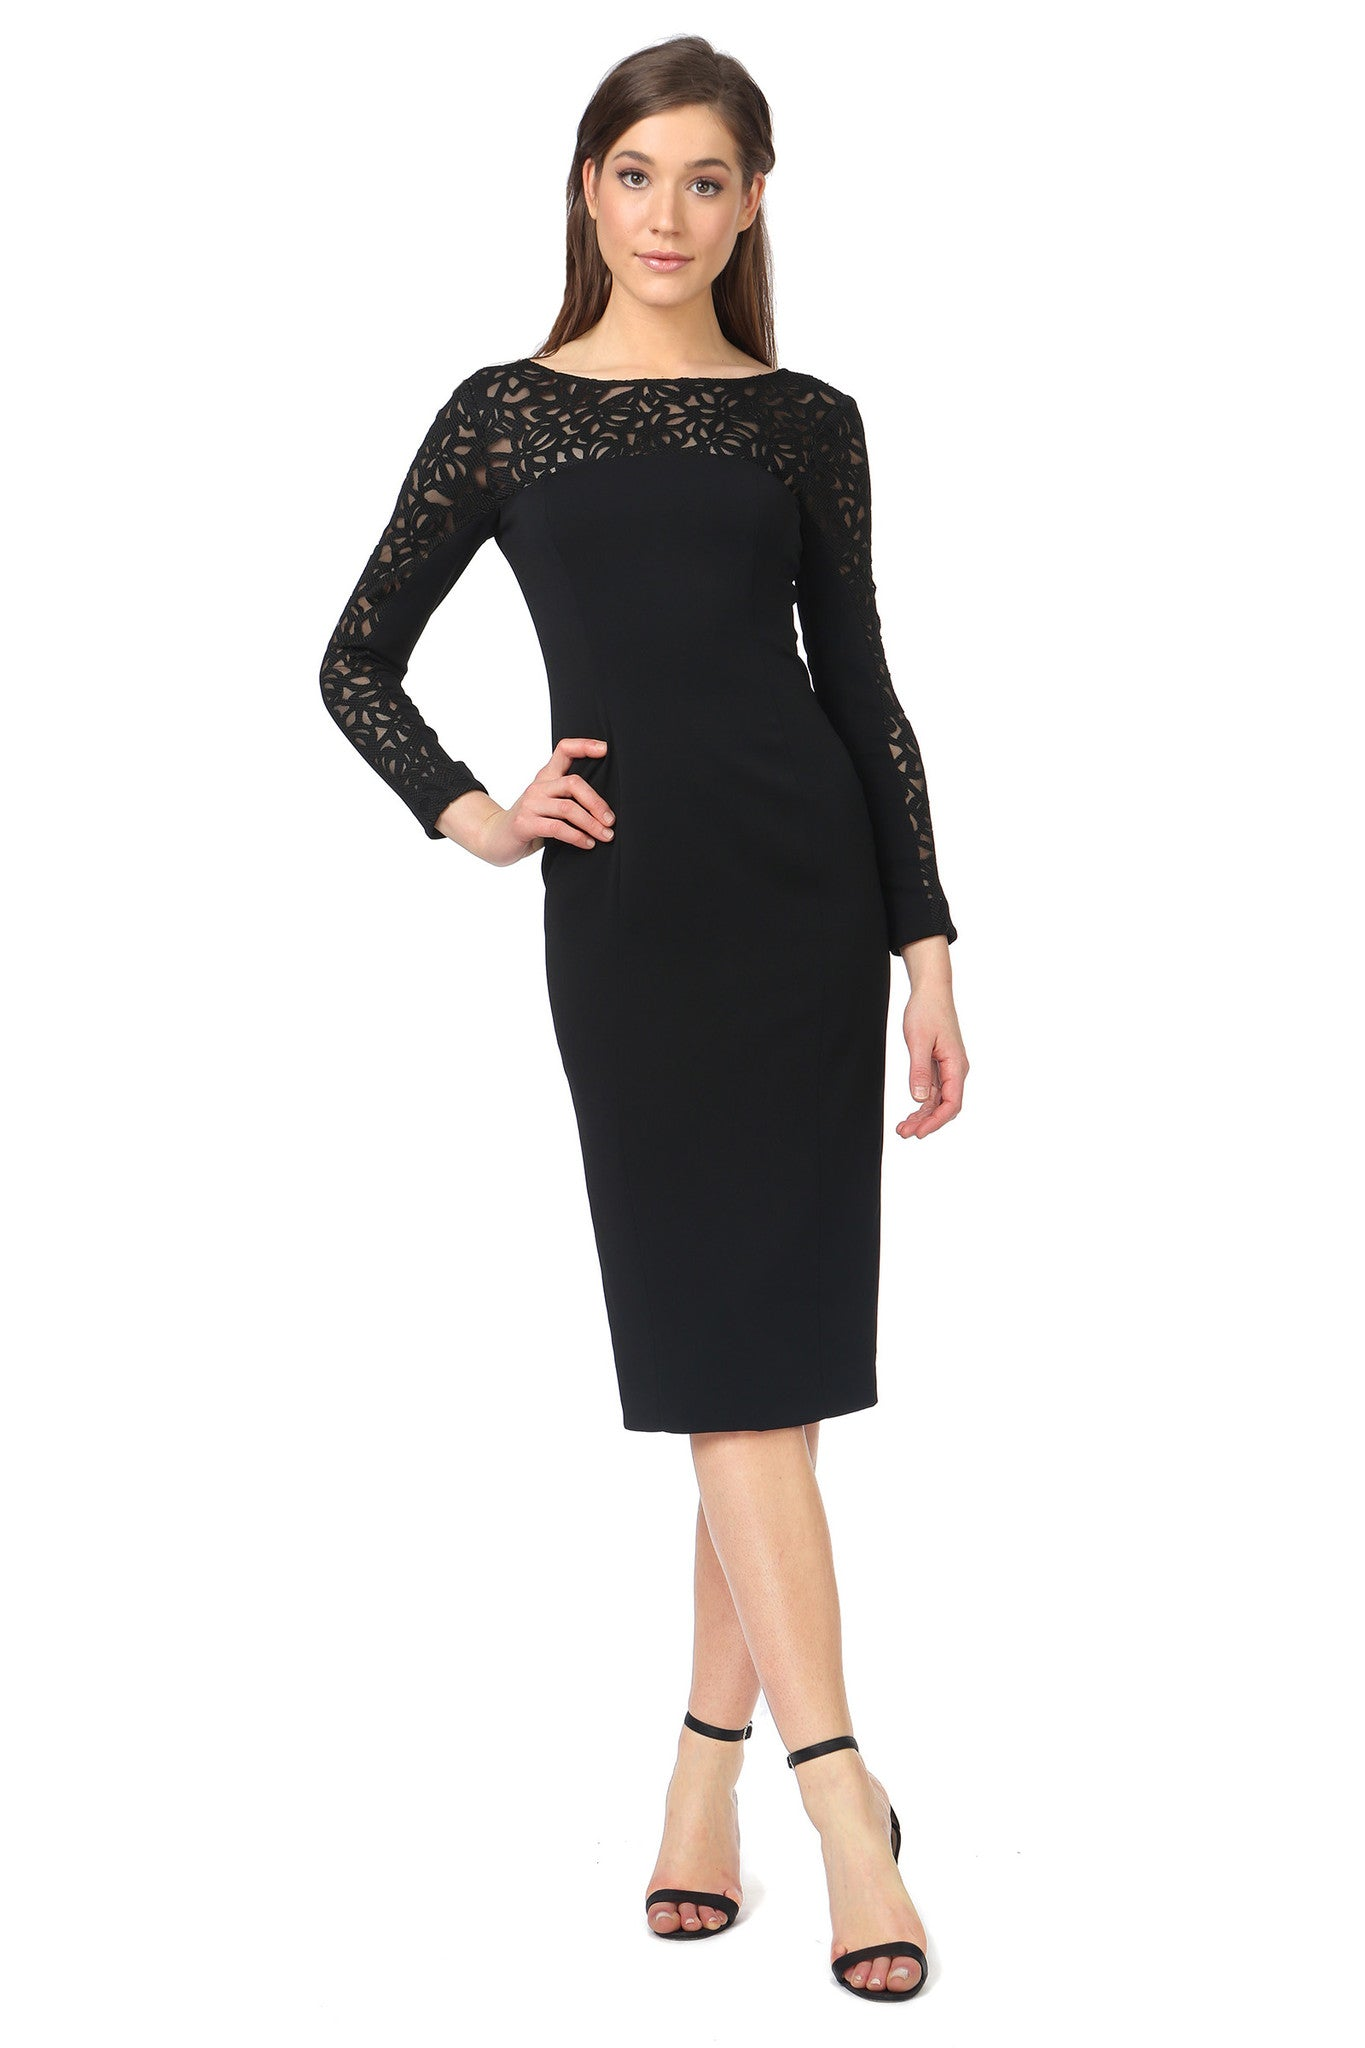 Jay Godfrey Classic Long-Sleeve LBD - Front View